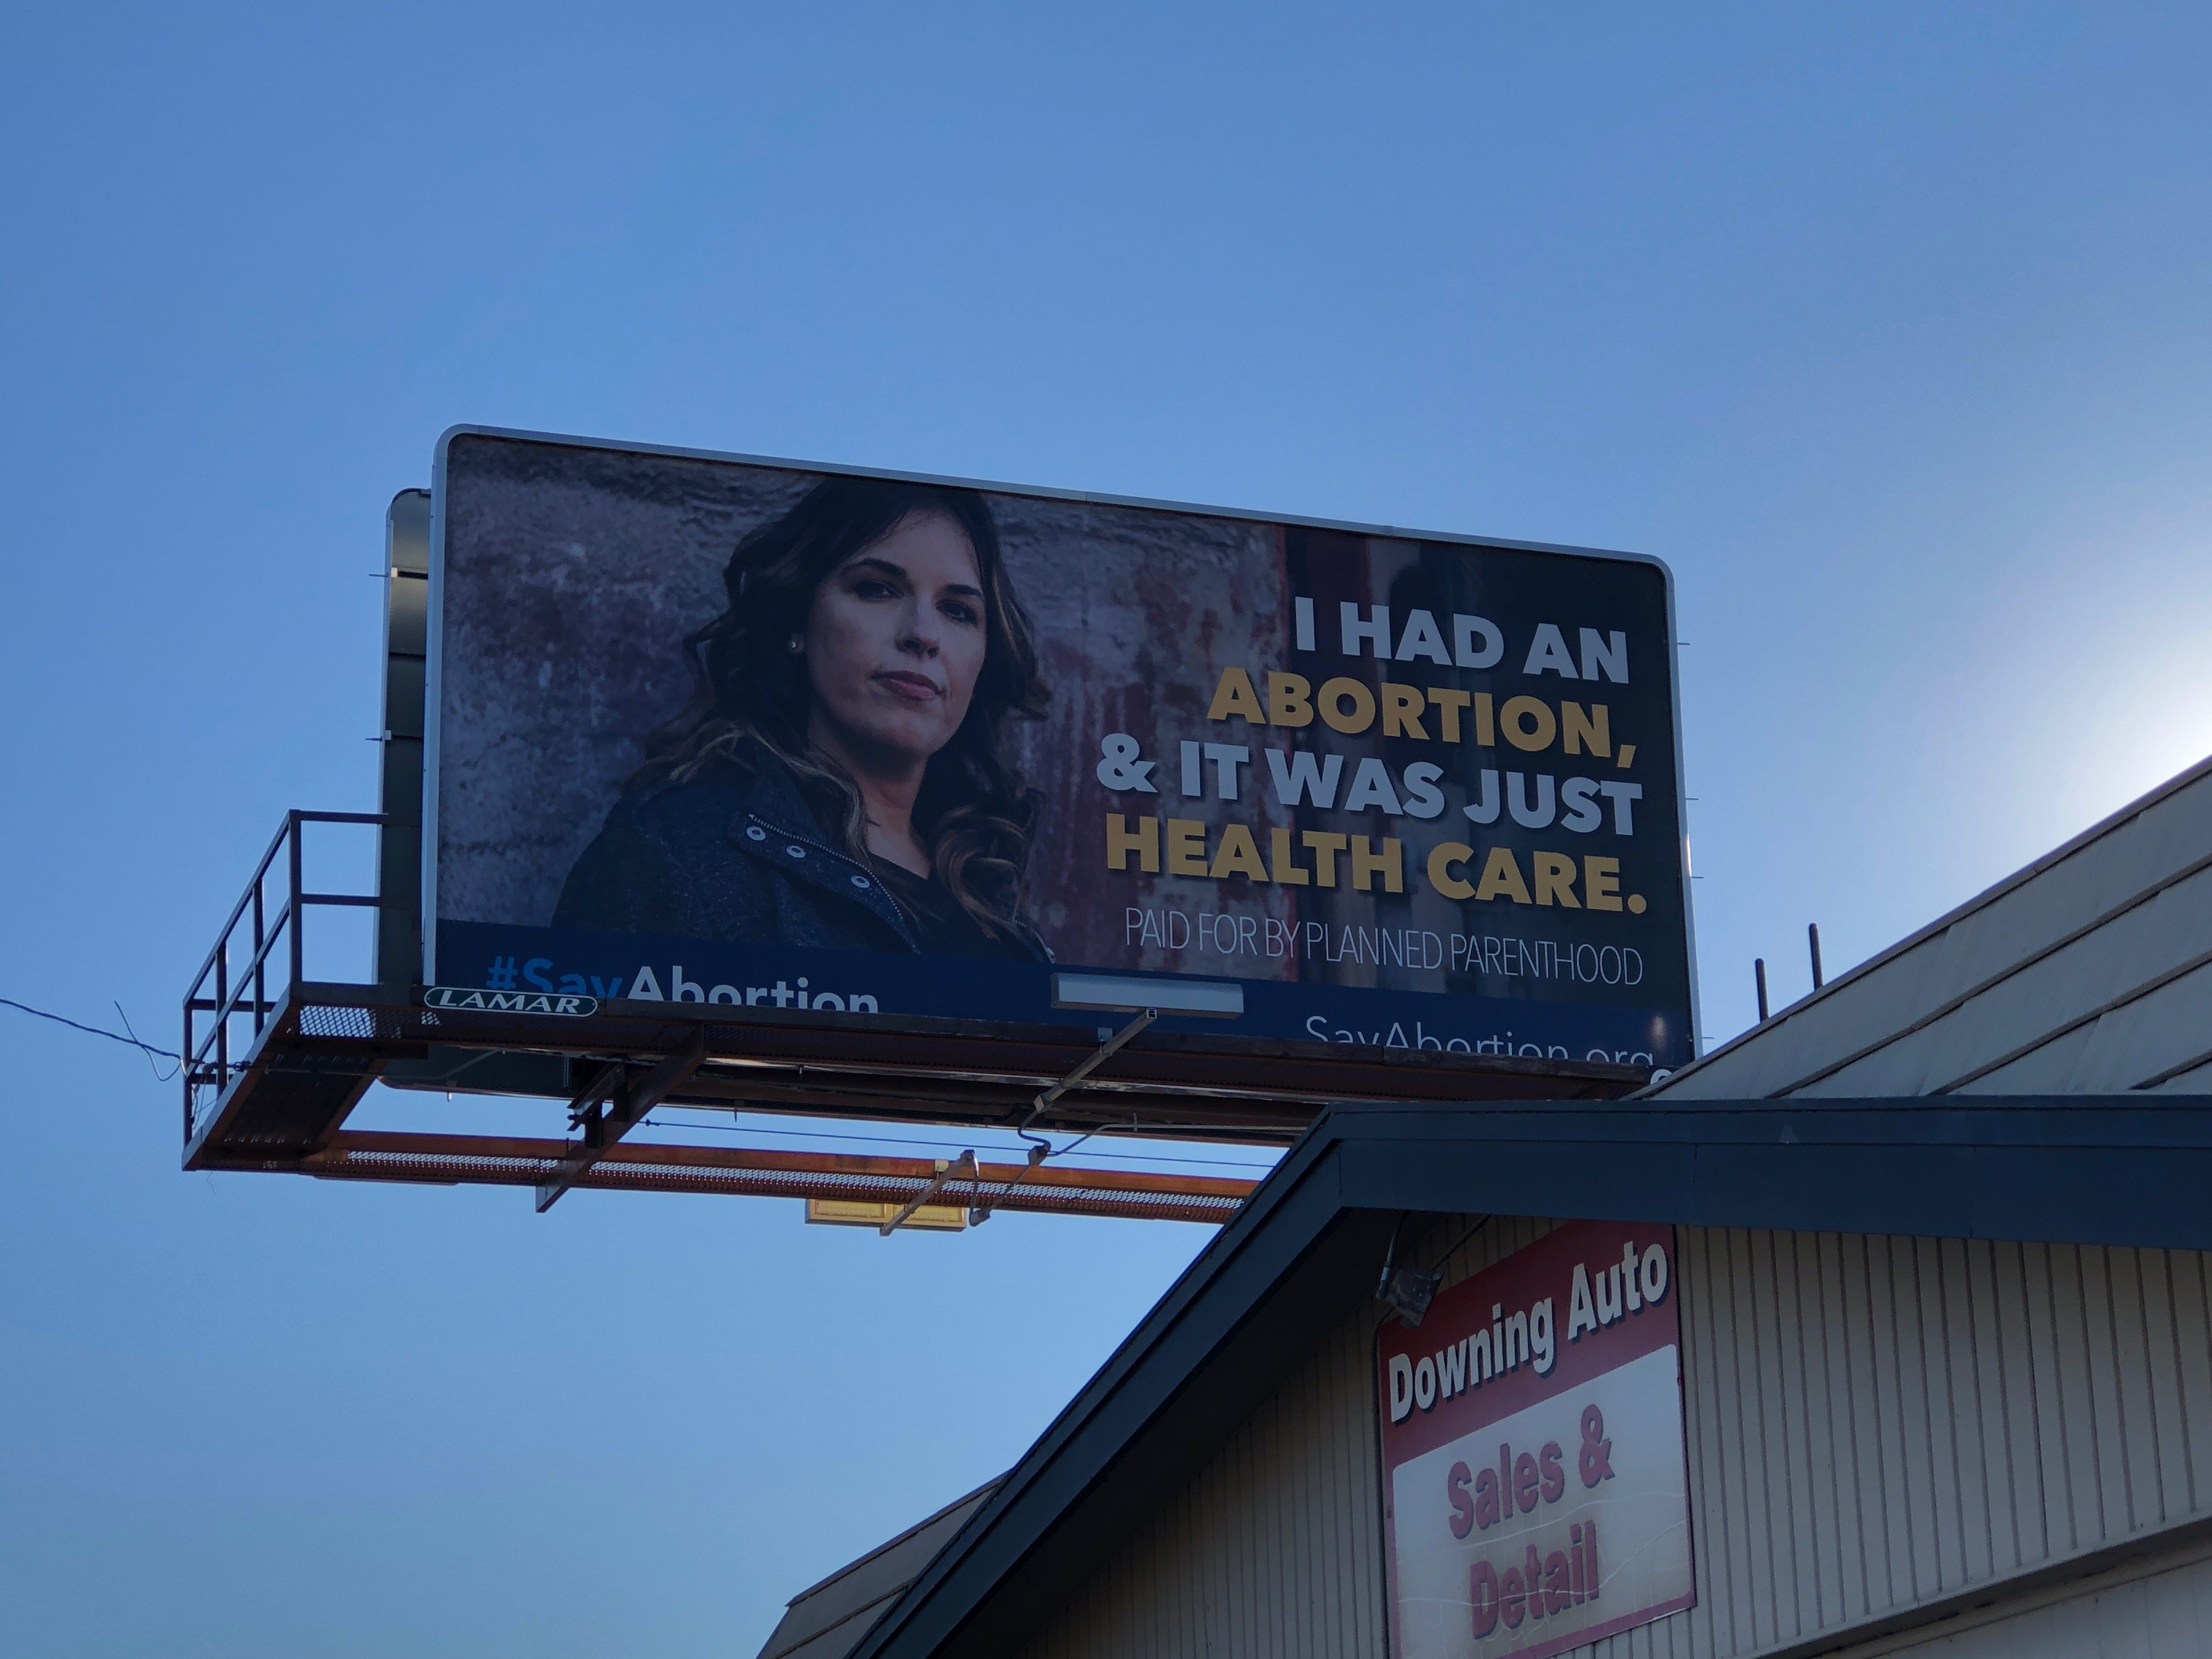 Planned Parenthood billboards around Iowa ask people to 'Say Abortion'